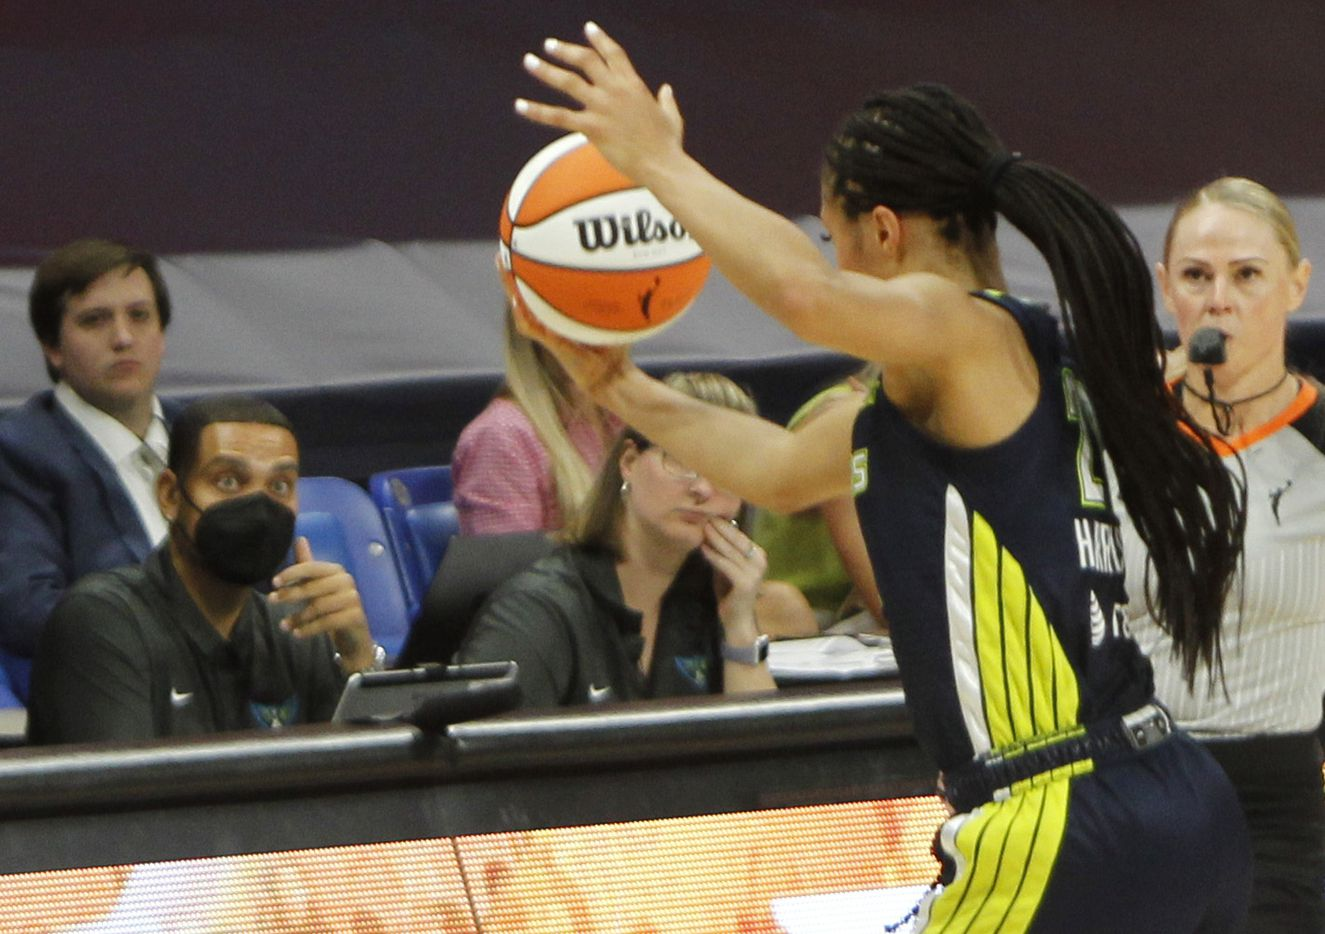 Dallas Wings forward Isabelle Harrison (20) reaches to keep the ball in play during second half action against the Chicago Sky. Dallas lost to Chicago 91-81. The two WNBA teams played their game at College Park Center in Arlington on June 30, 2021. (Steve Hamm/ Special Contributor)